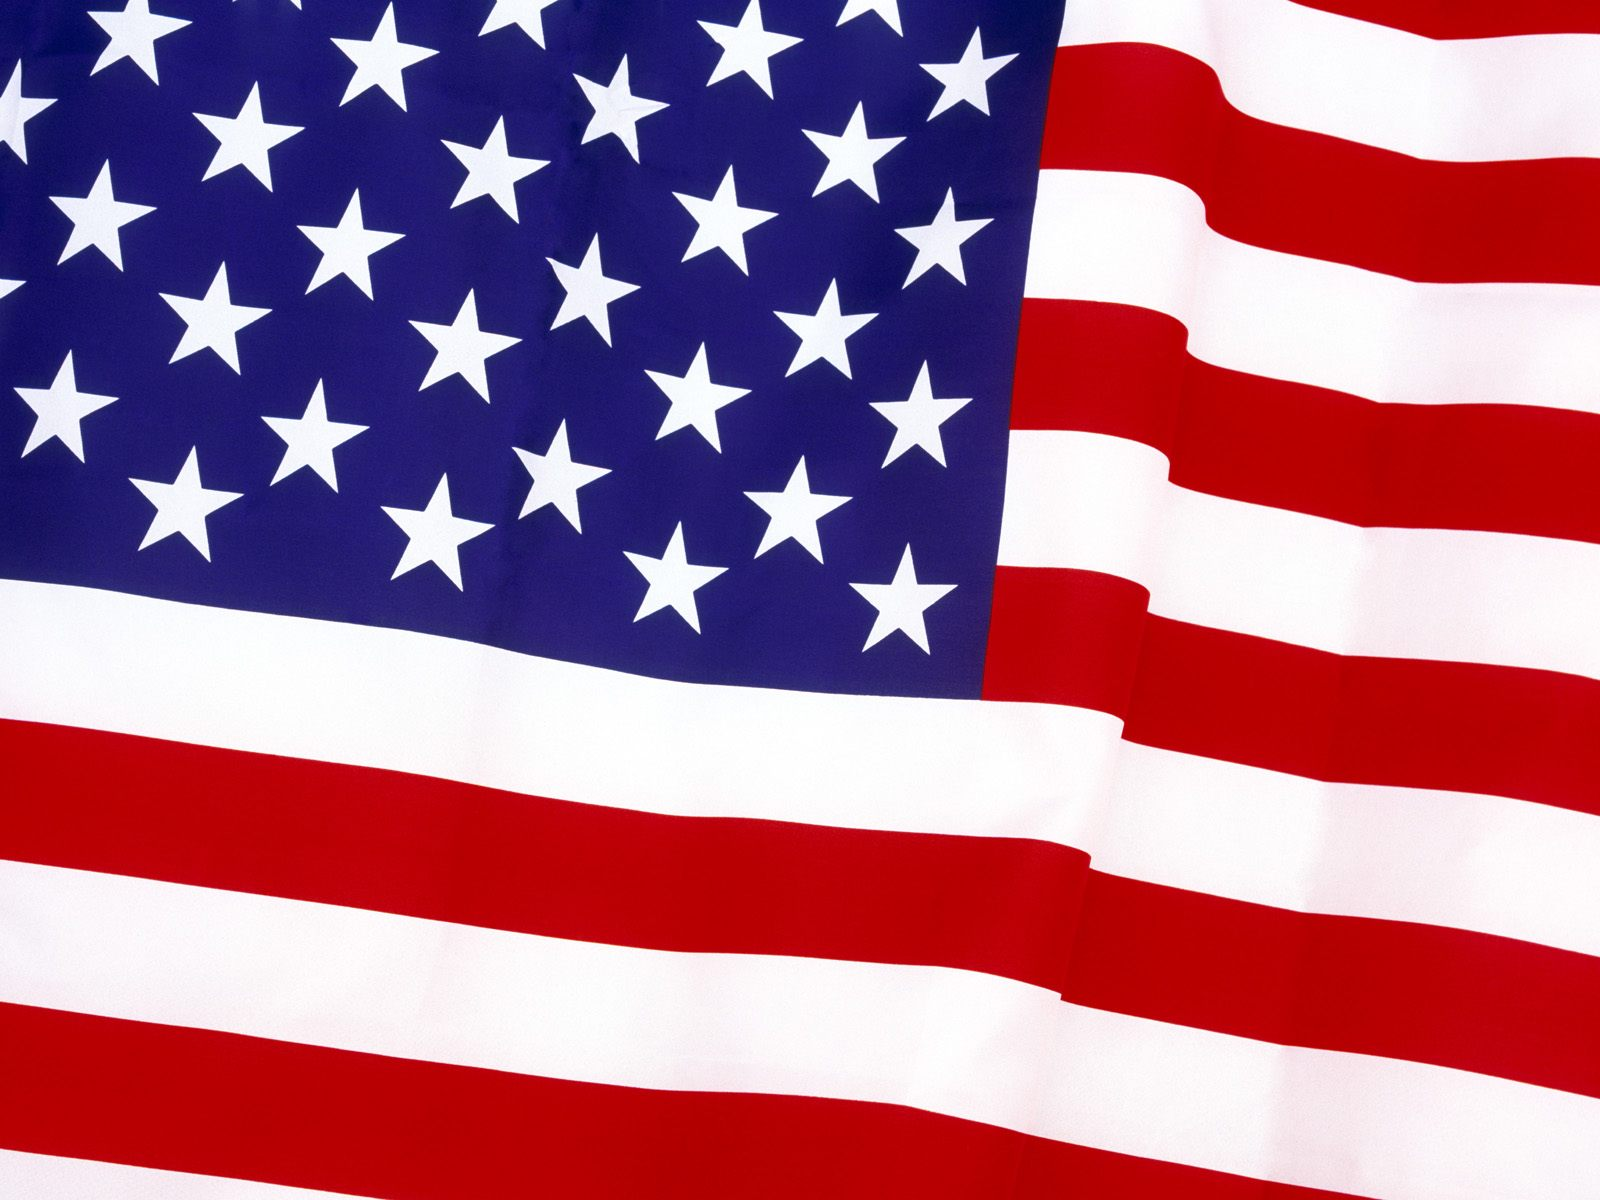 HD Wallpepars: American Flag HD Wallpapers